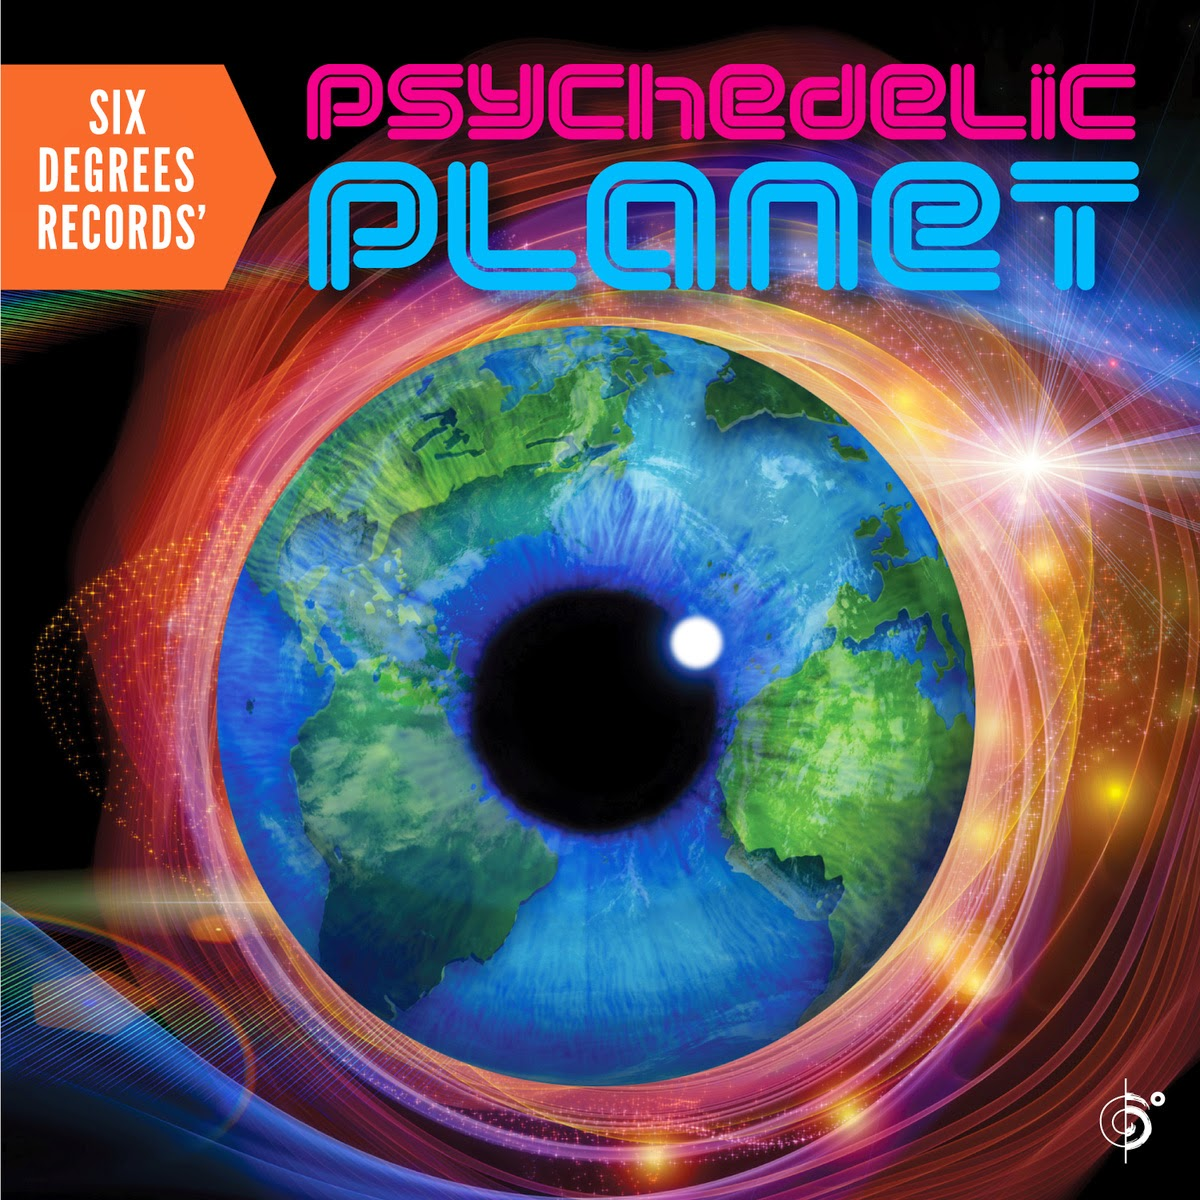 http://www.d4am.net/2014/09/six-degree-records-psychedelic-planet.html